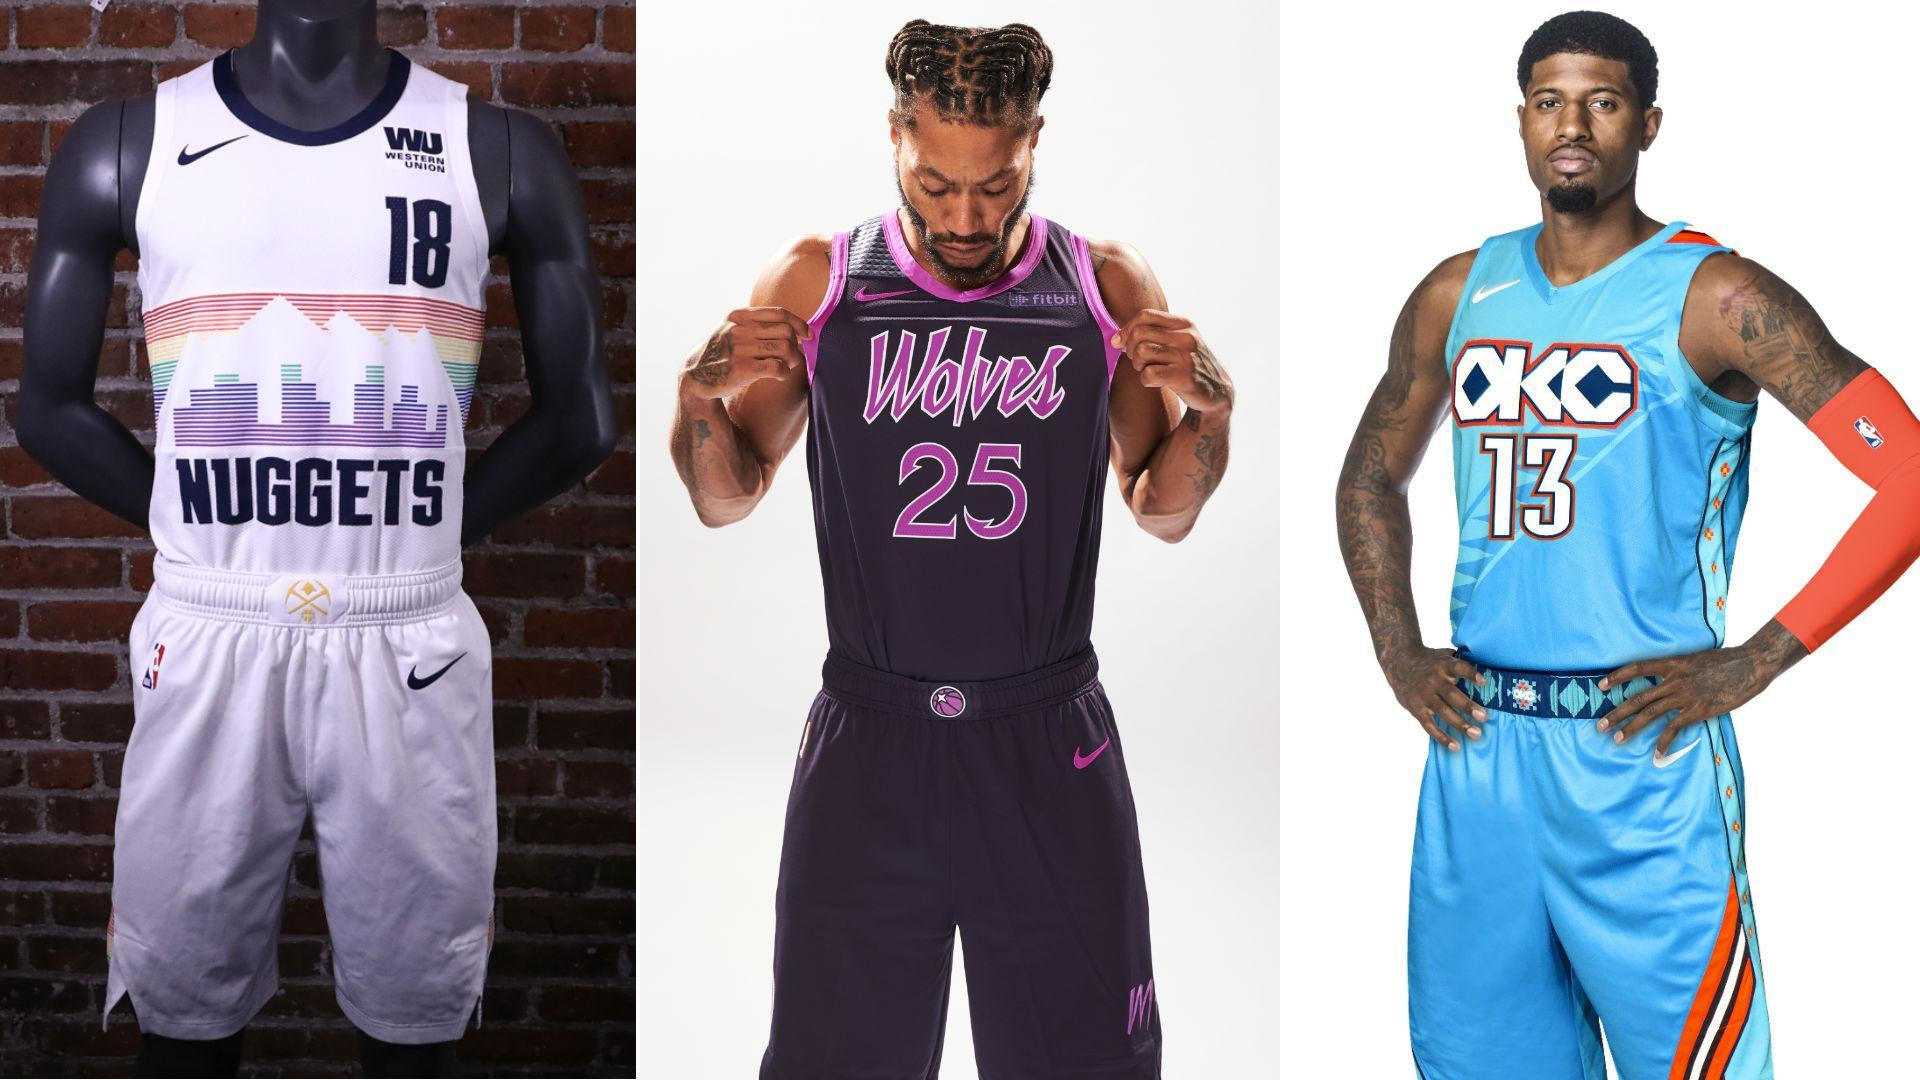 e4142d678d59 City Edition uniforms  Teams league-wide unveil new looks for 2018 ...